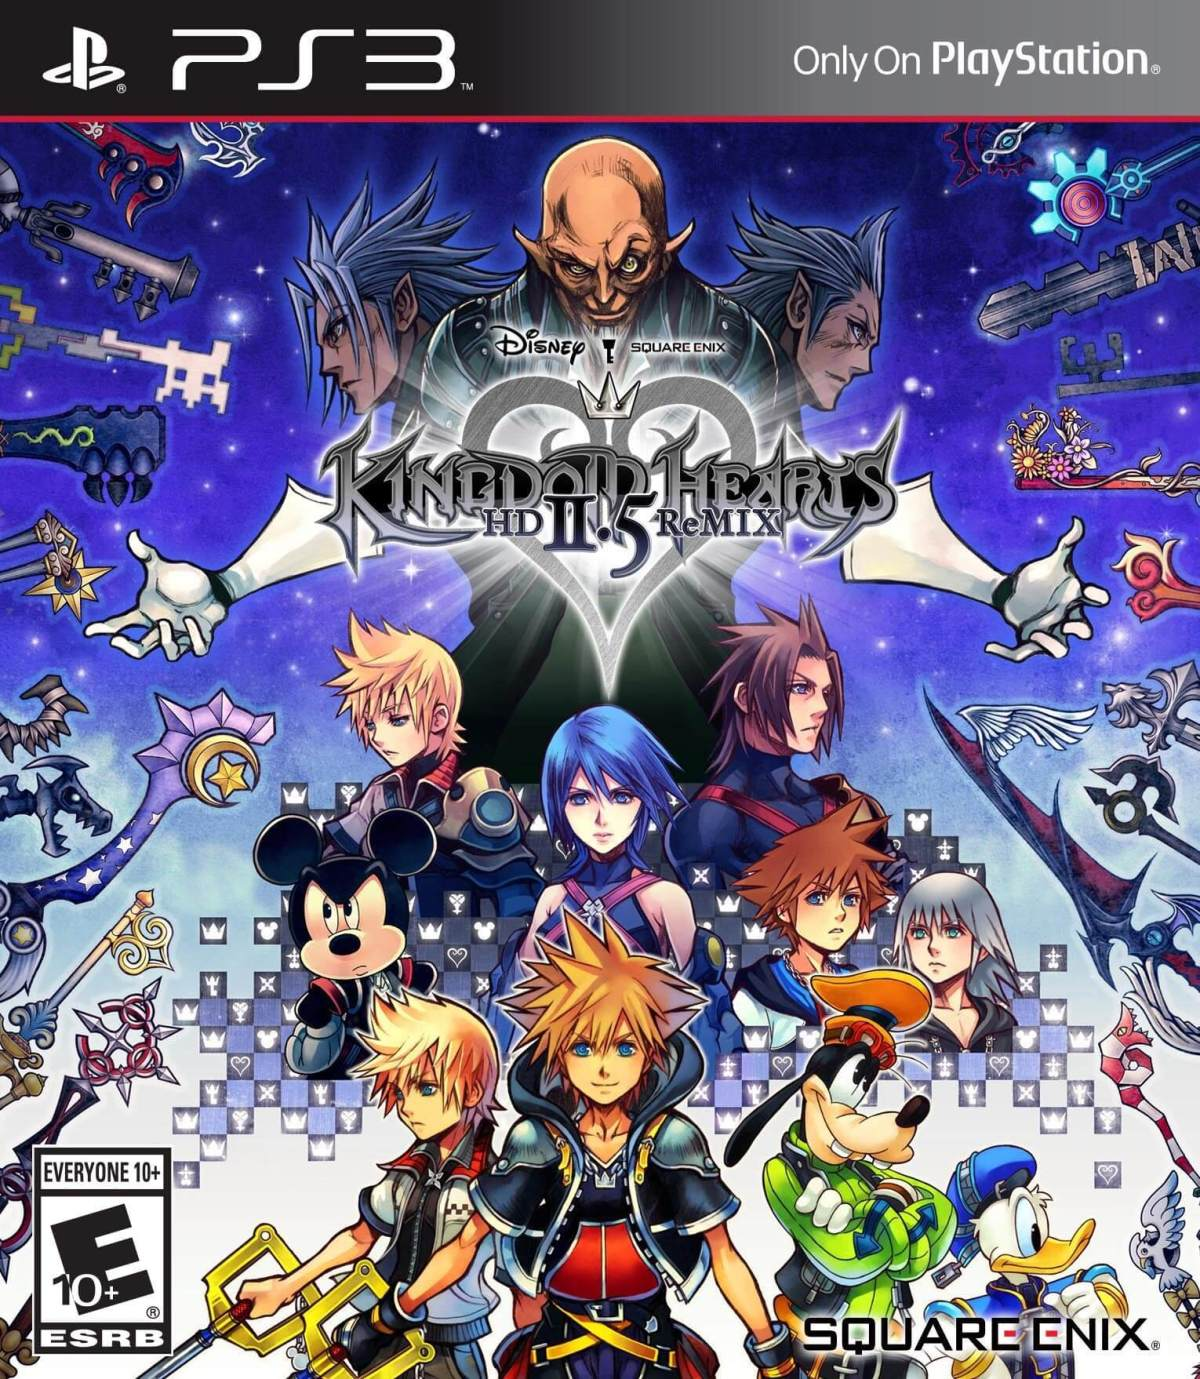 Kingdom Hearts 1.5 x 2.5